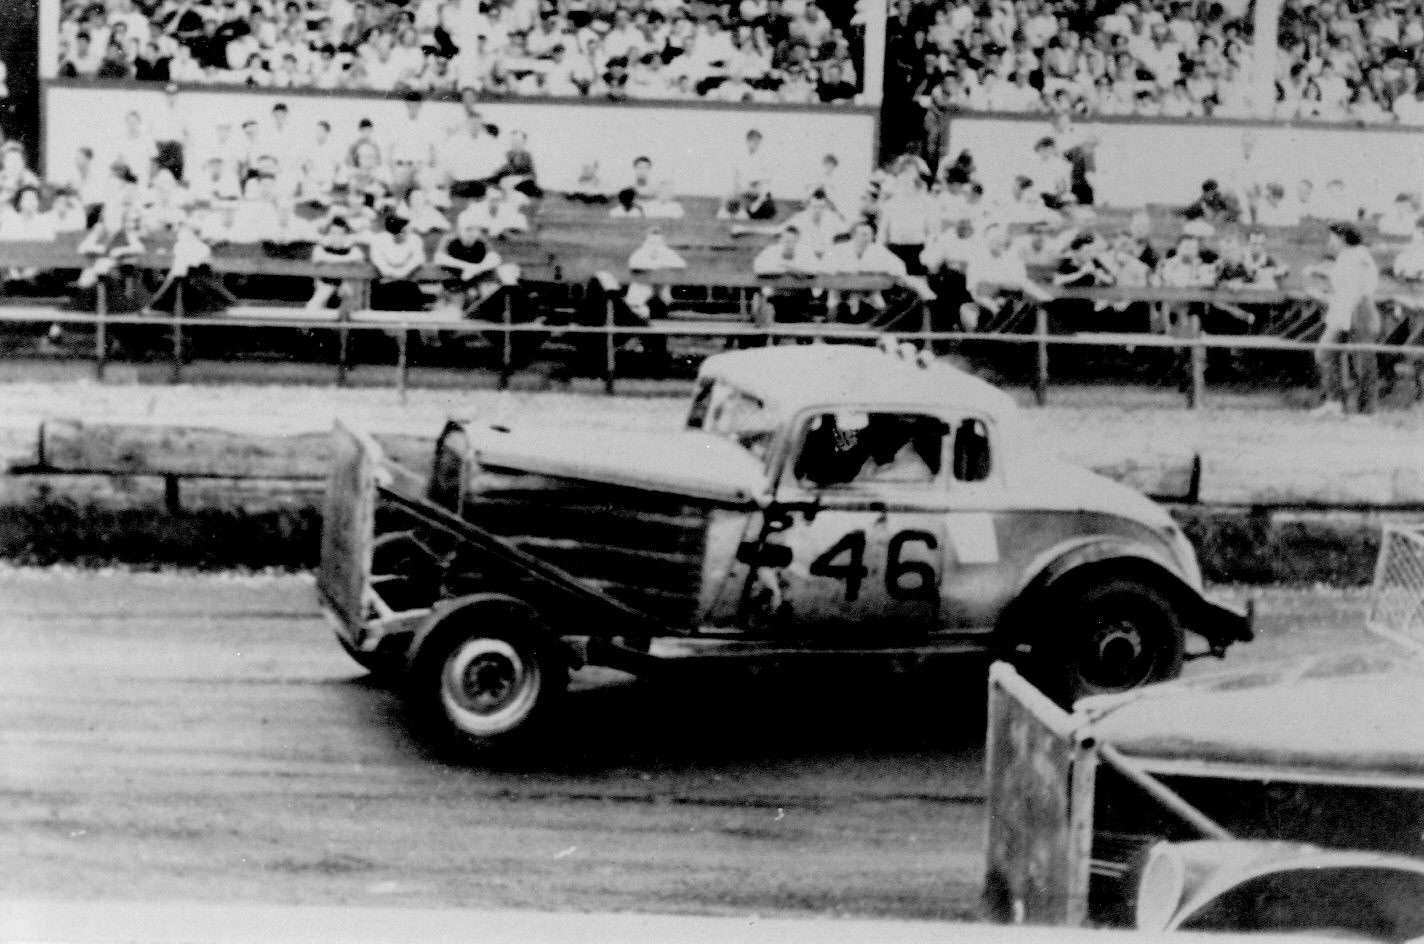 HOT RODS and JALOPIES: CLE Grandstand late 1950's and early